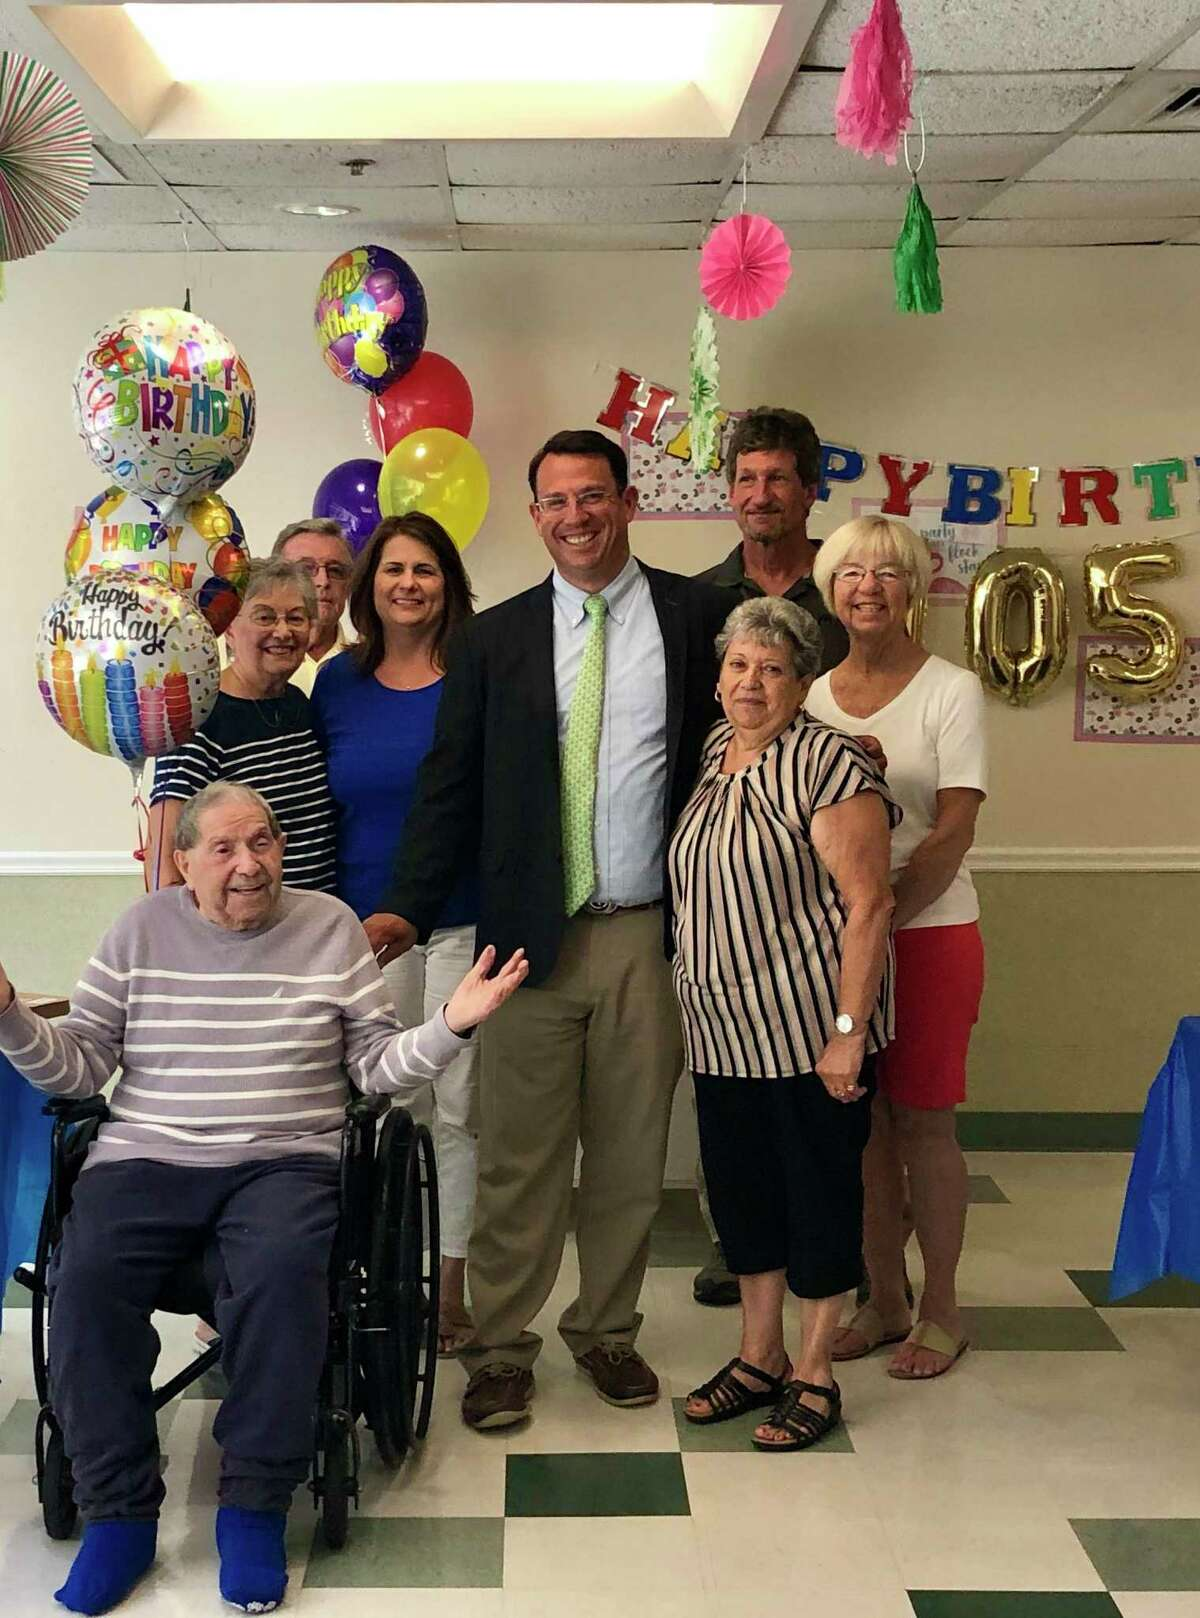 James Mottola celebrated his 105th birthday on Aug. 26, 2019 at Milford Health & Rehabilitation Center with friends, family and Milford's Mayor Benjamin Blake.